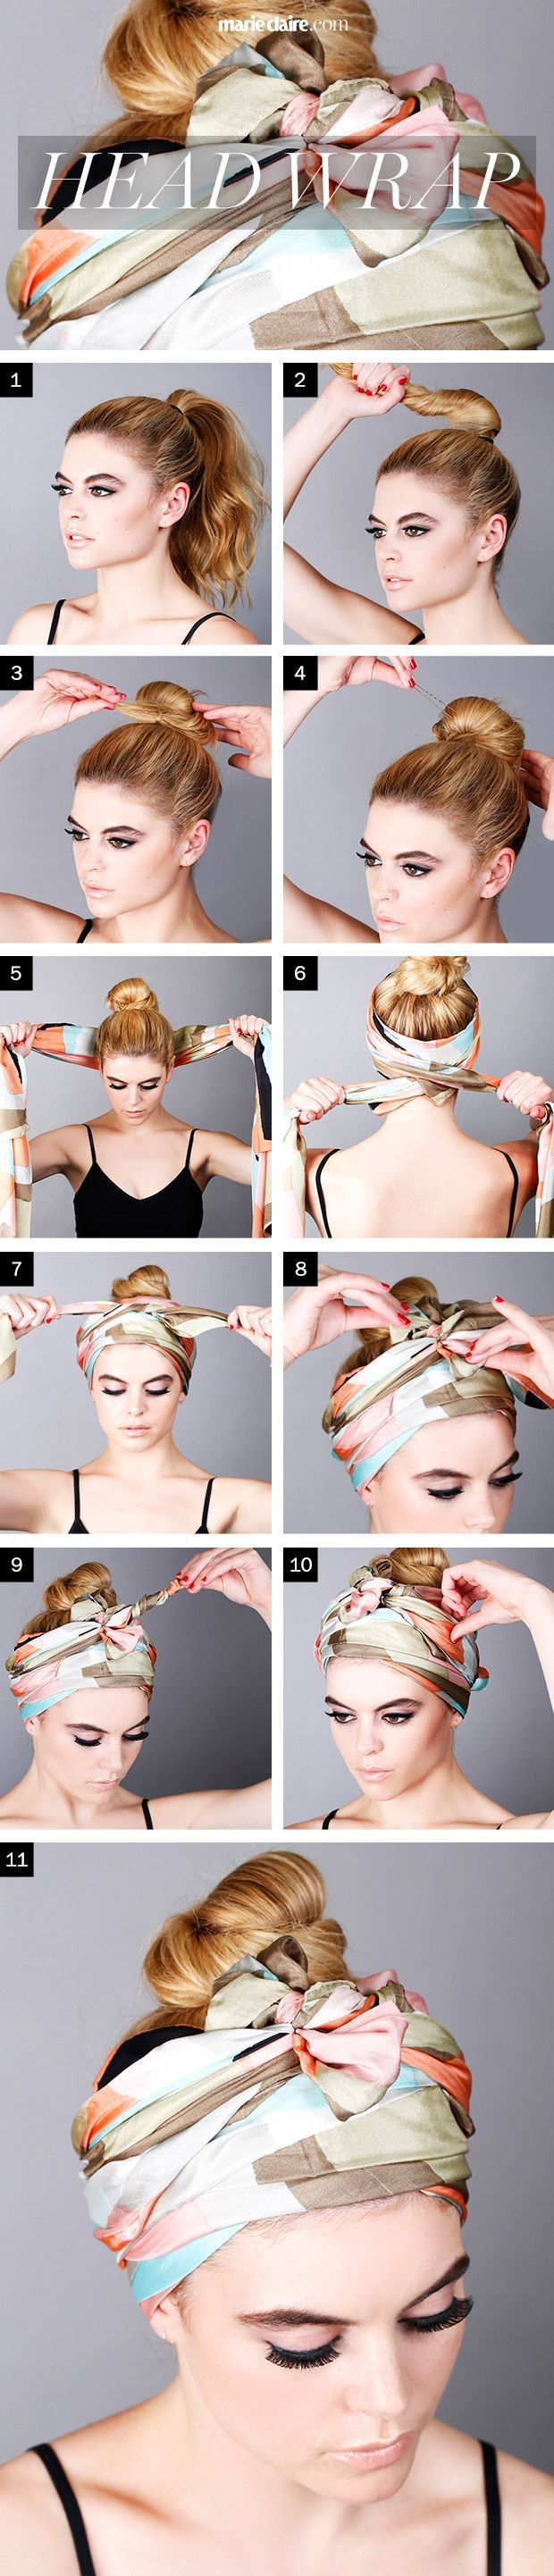 1000 Ideas About Photo Coiffure On Pinterest Photo Coiffure